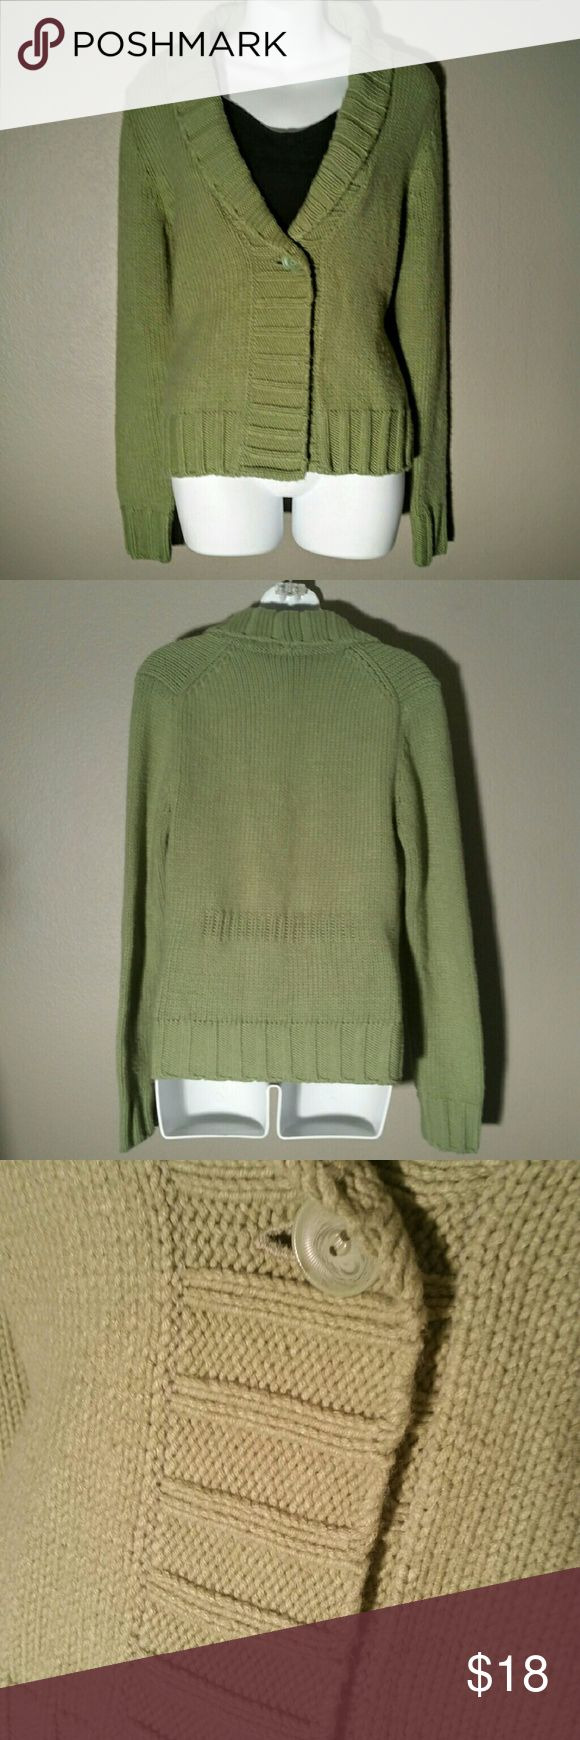 Sweater jacket cardigan by Old Navy CONDITION: Like New! --- CONCERNS: None! --- I will provide more pics, materials, measurements, etc. upon request! --- ***I welcome ALL OFFERS and do bundle discounts!*** Old Navy Sweaters